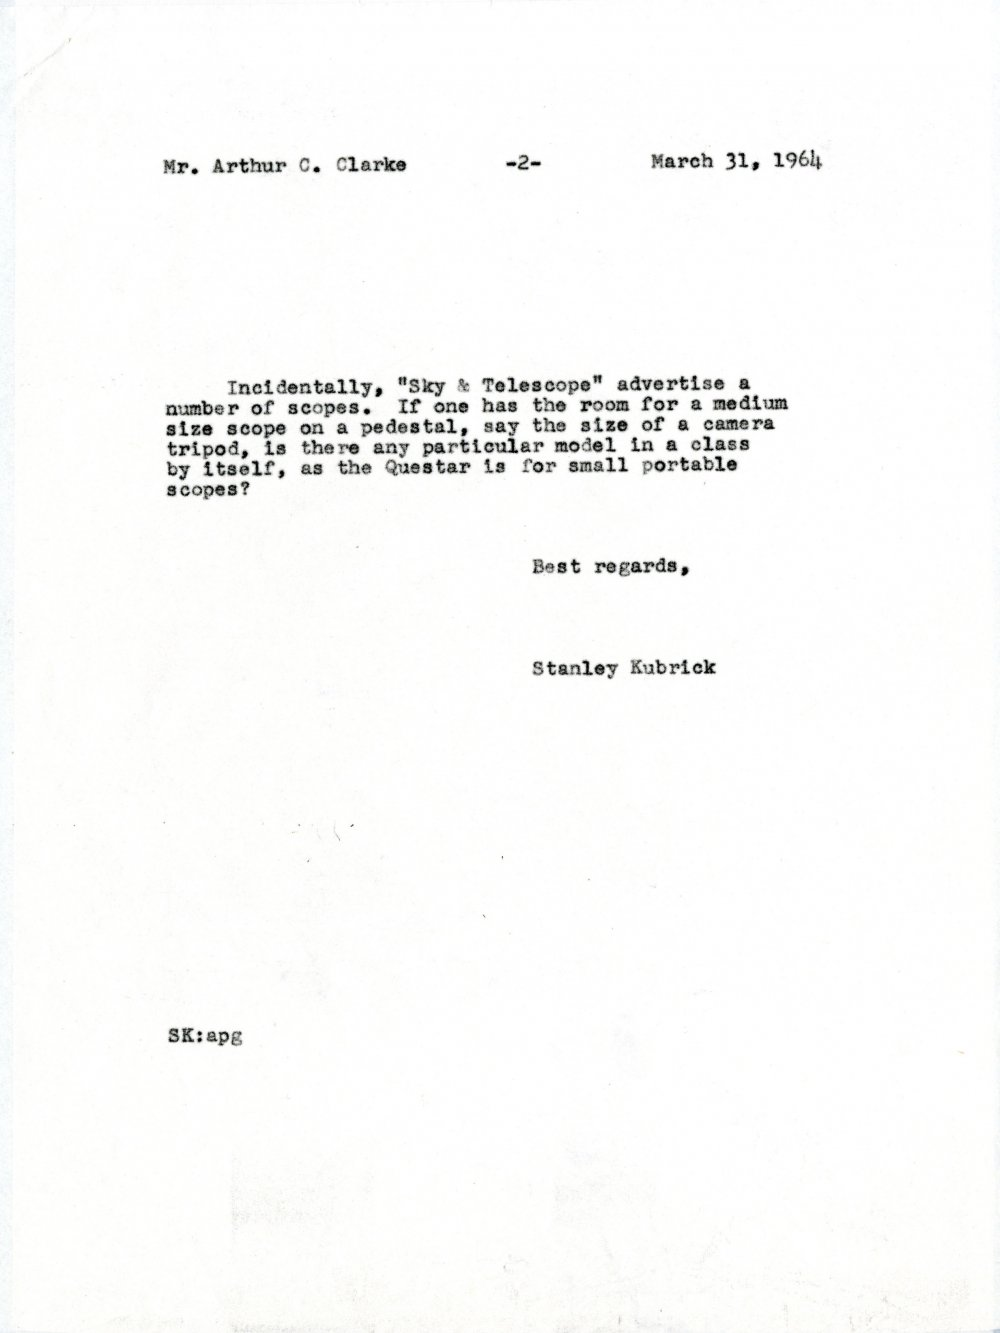 Letter from Stanley Kubrick to Arthur C. Clarke